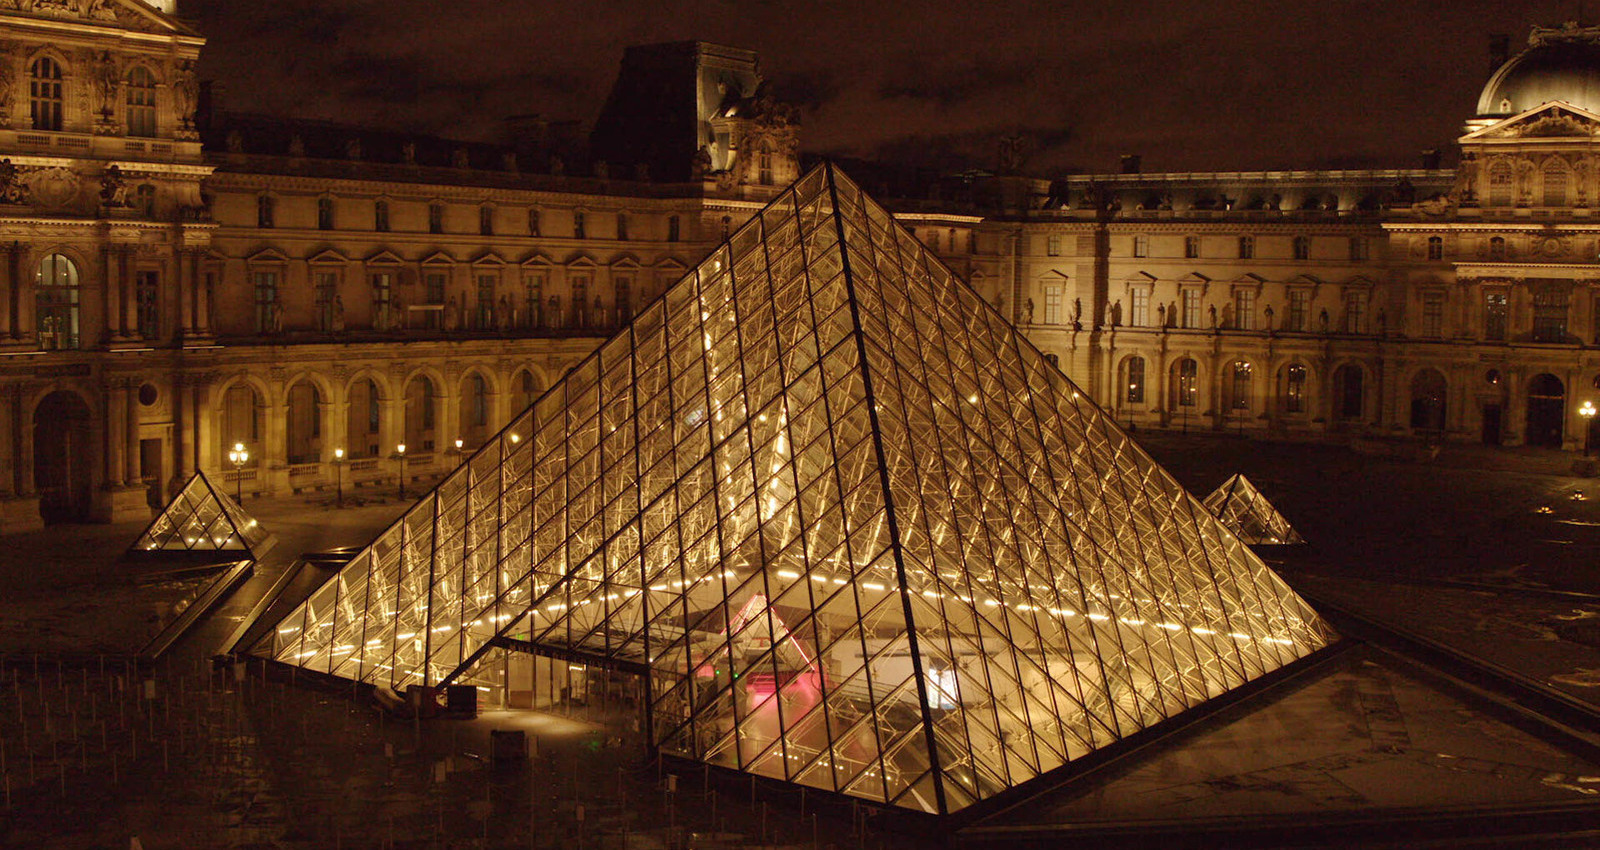 A Night At... The Louvre